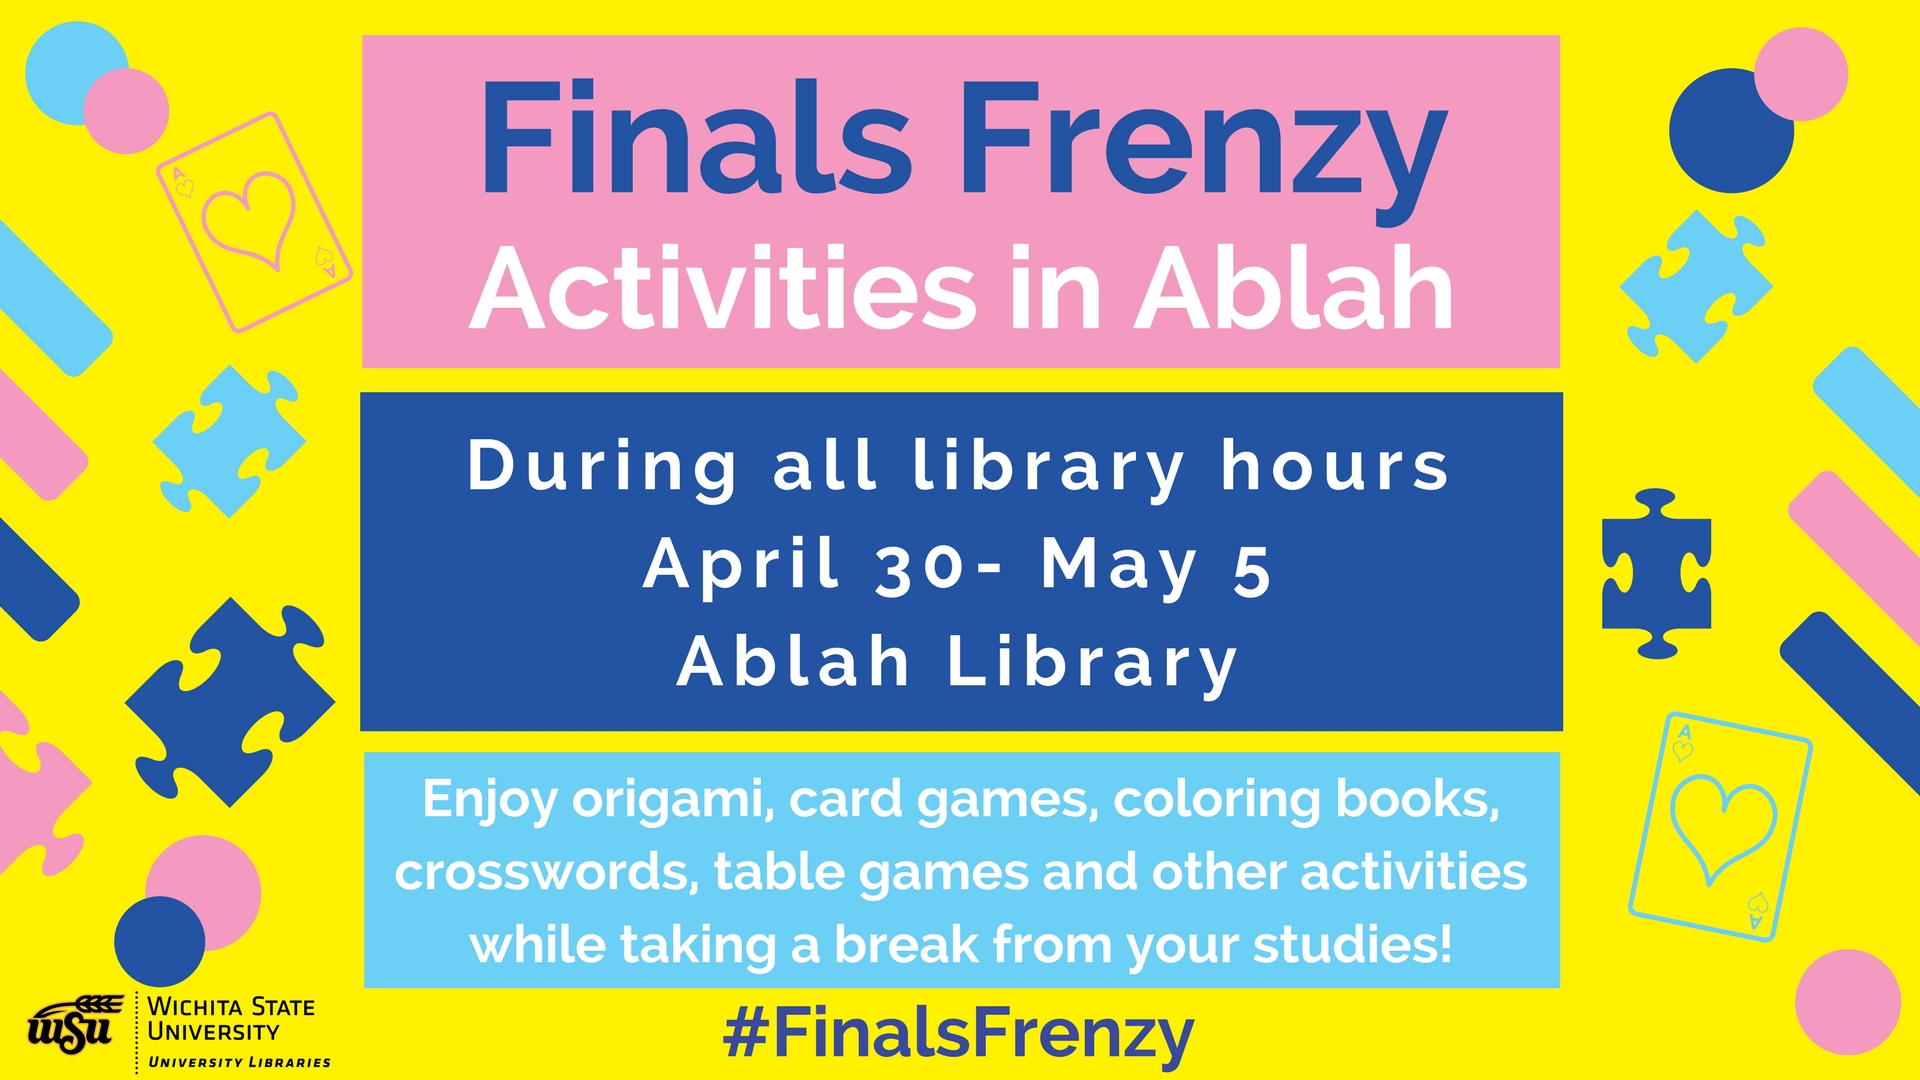 Finals Frenzy - Activities in Ablah